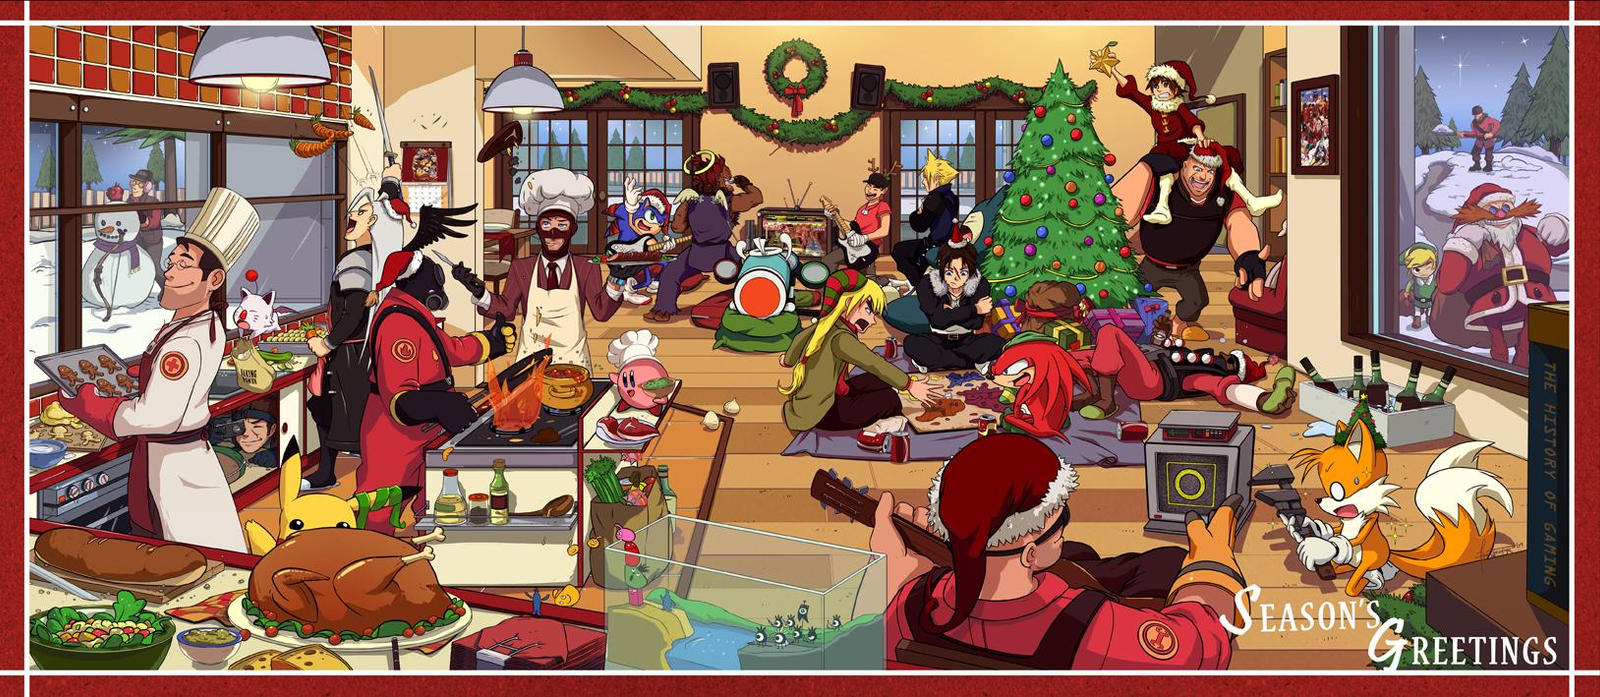 Merry Gamey Christmas by haruningster on DeviantArt